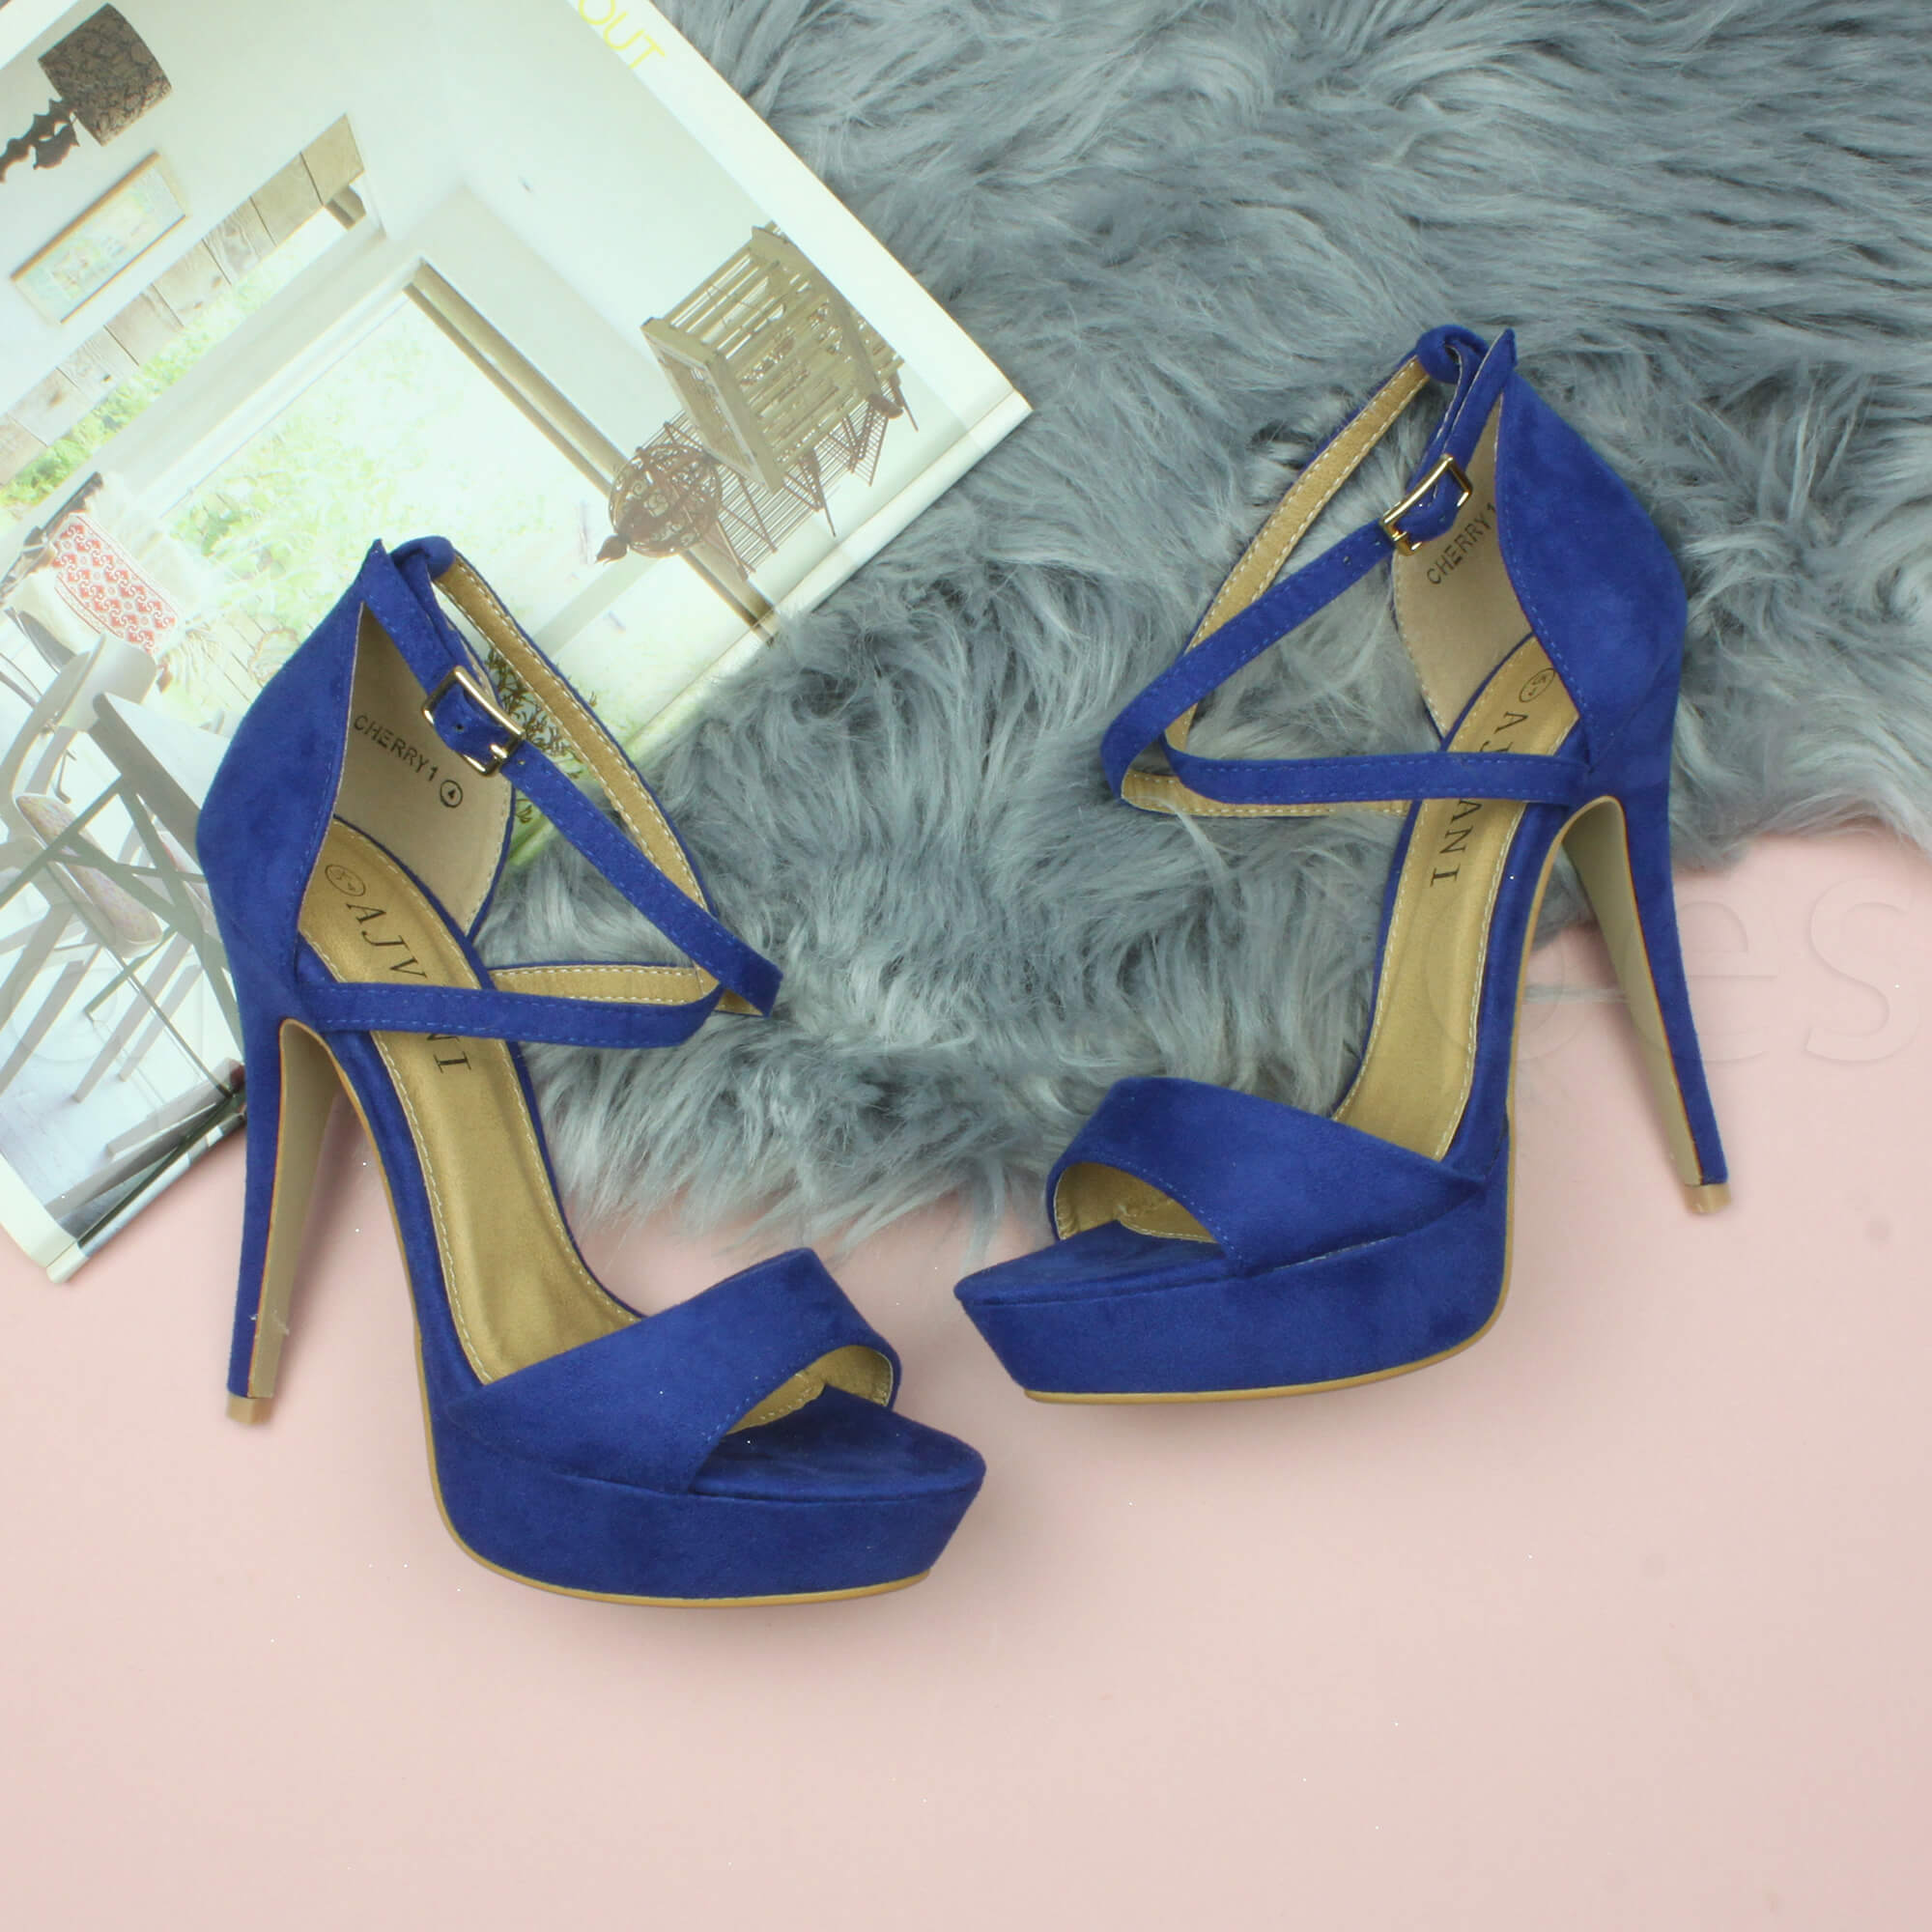 WOMENS-LADIES-PLATFORM-HIGH-HEEL-PEEP-TOE-CROSS-OVER-STRAPPY-SANDALS-SHOES-SIZE thumbnail 34